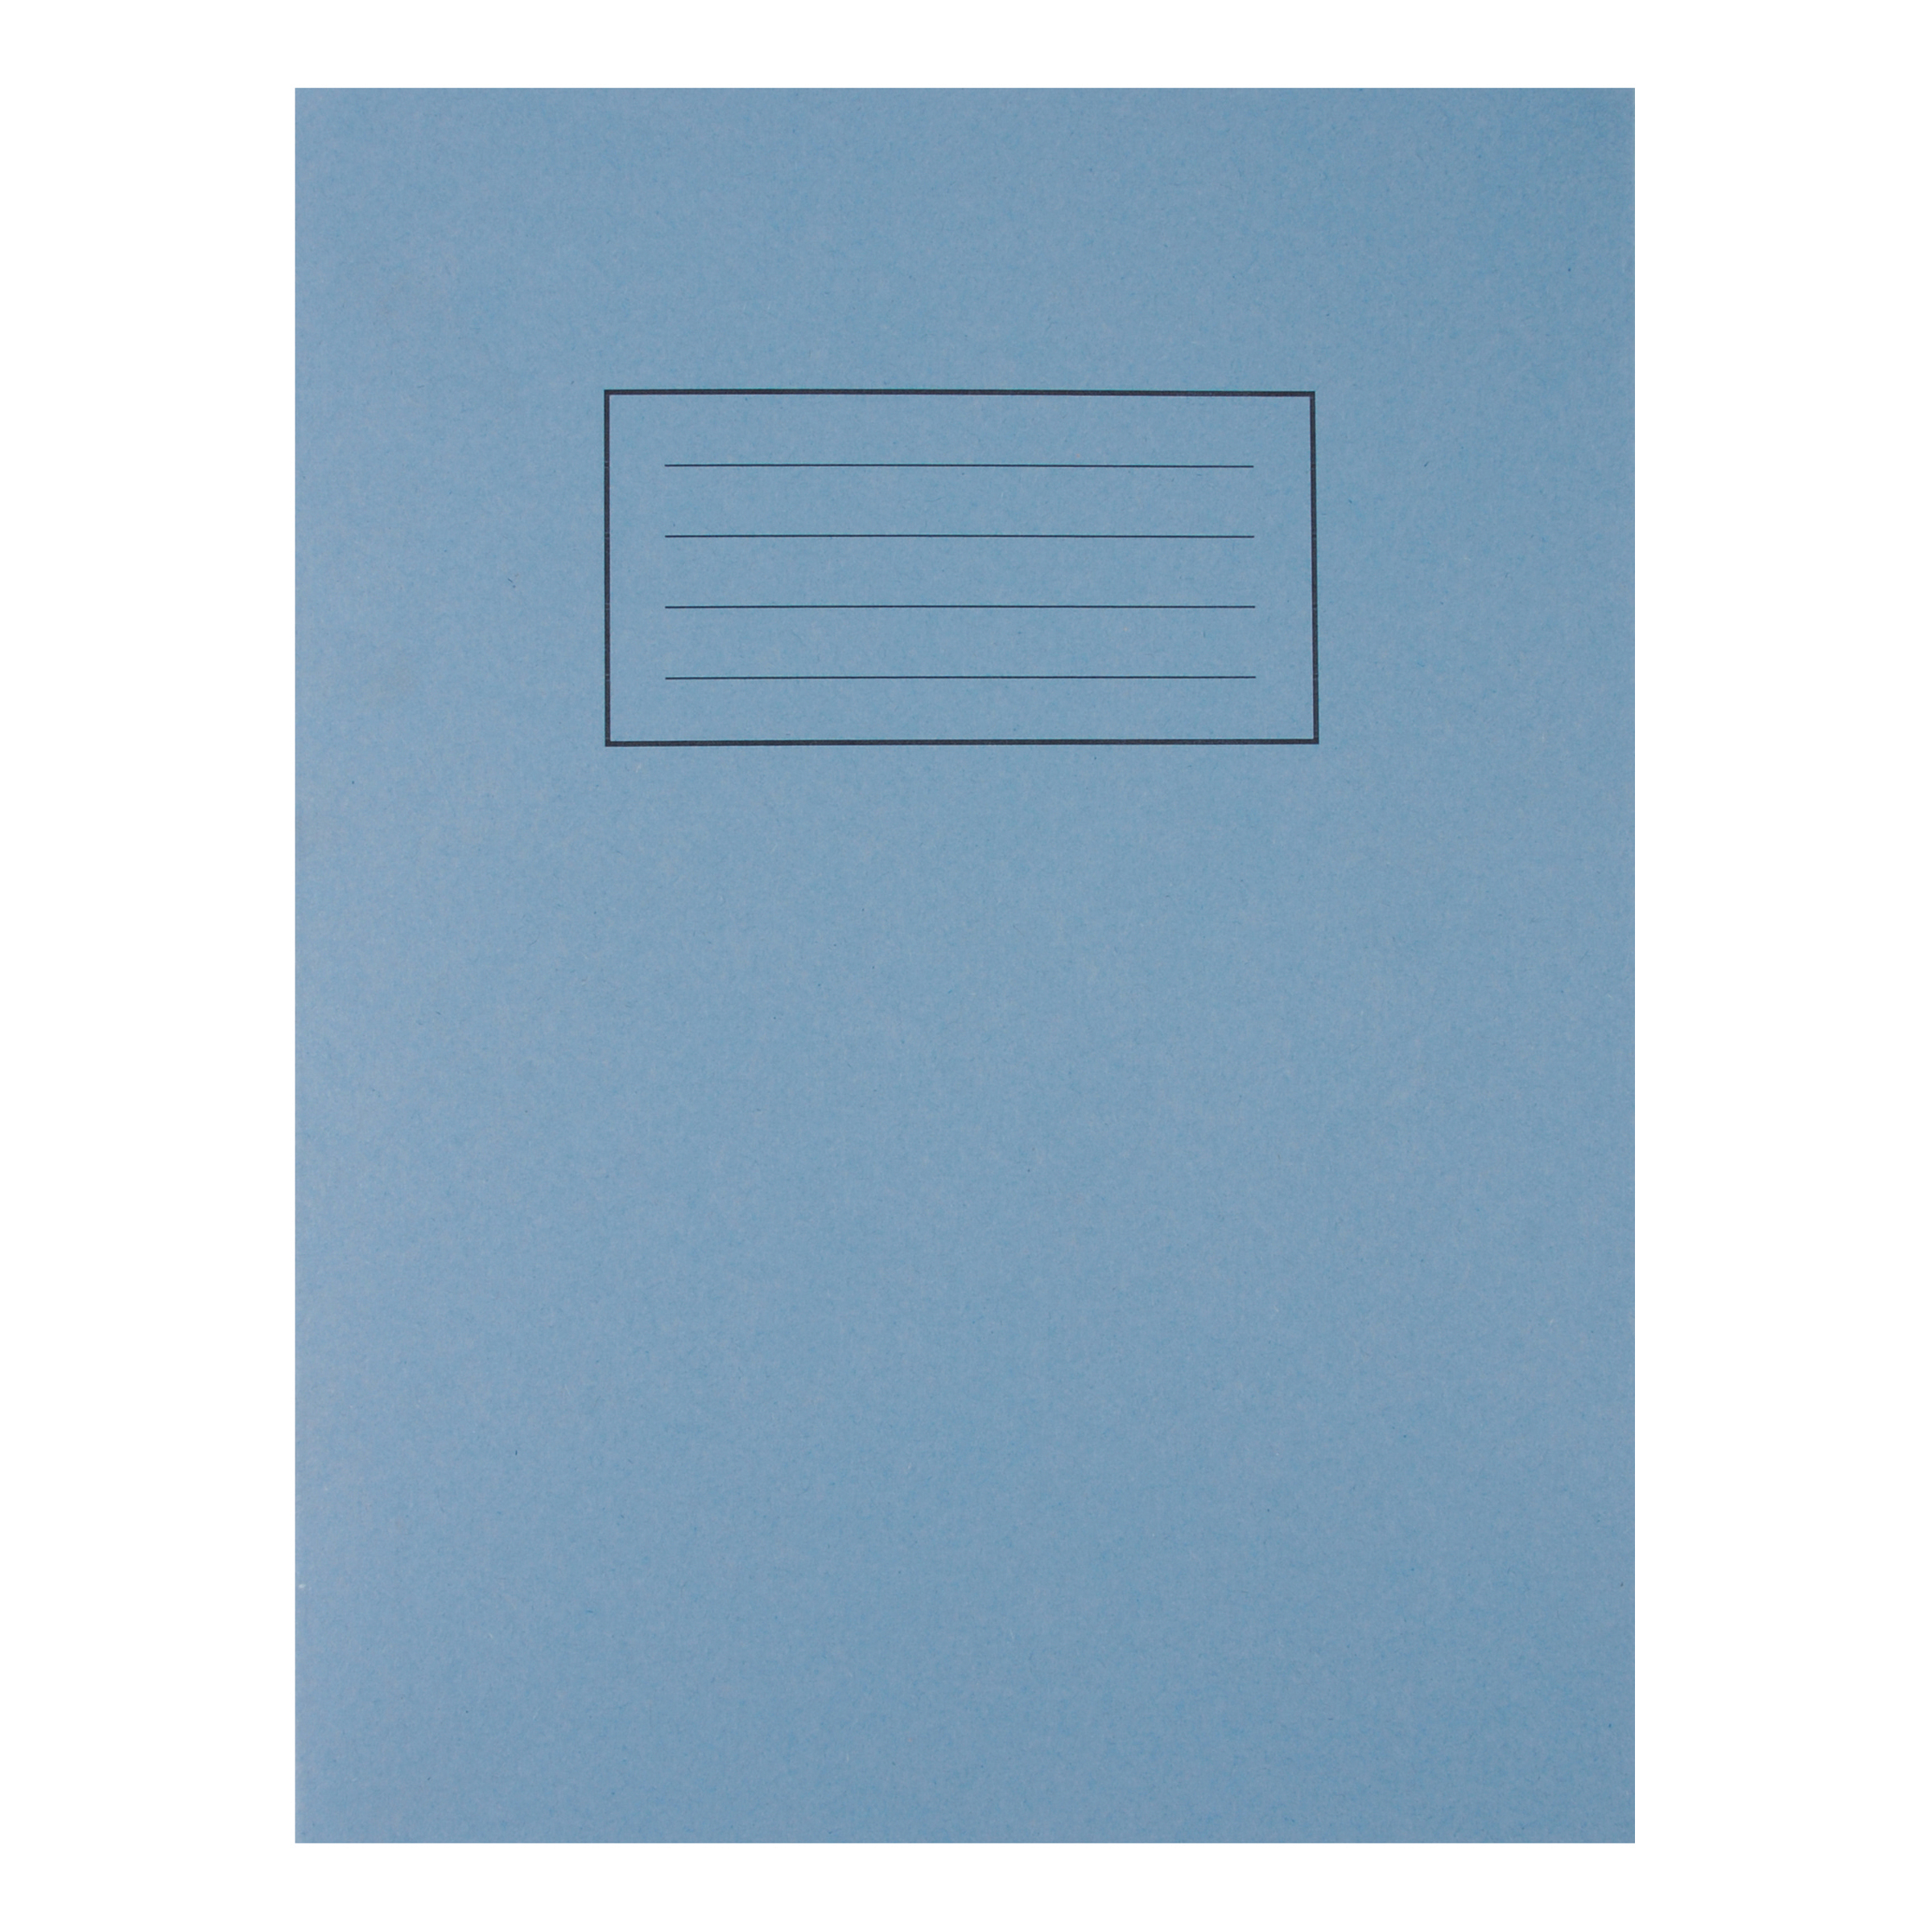 Silvine Exercise Book Ruled and Margin 80 Pages 75gsm 229x178mm Blue Ref EX104 Pack 10